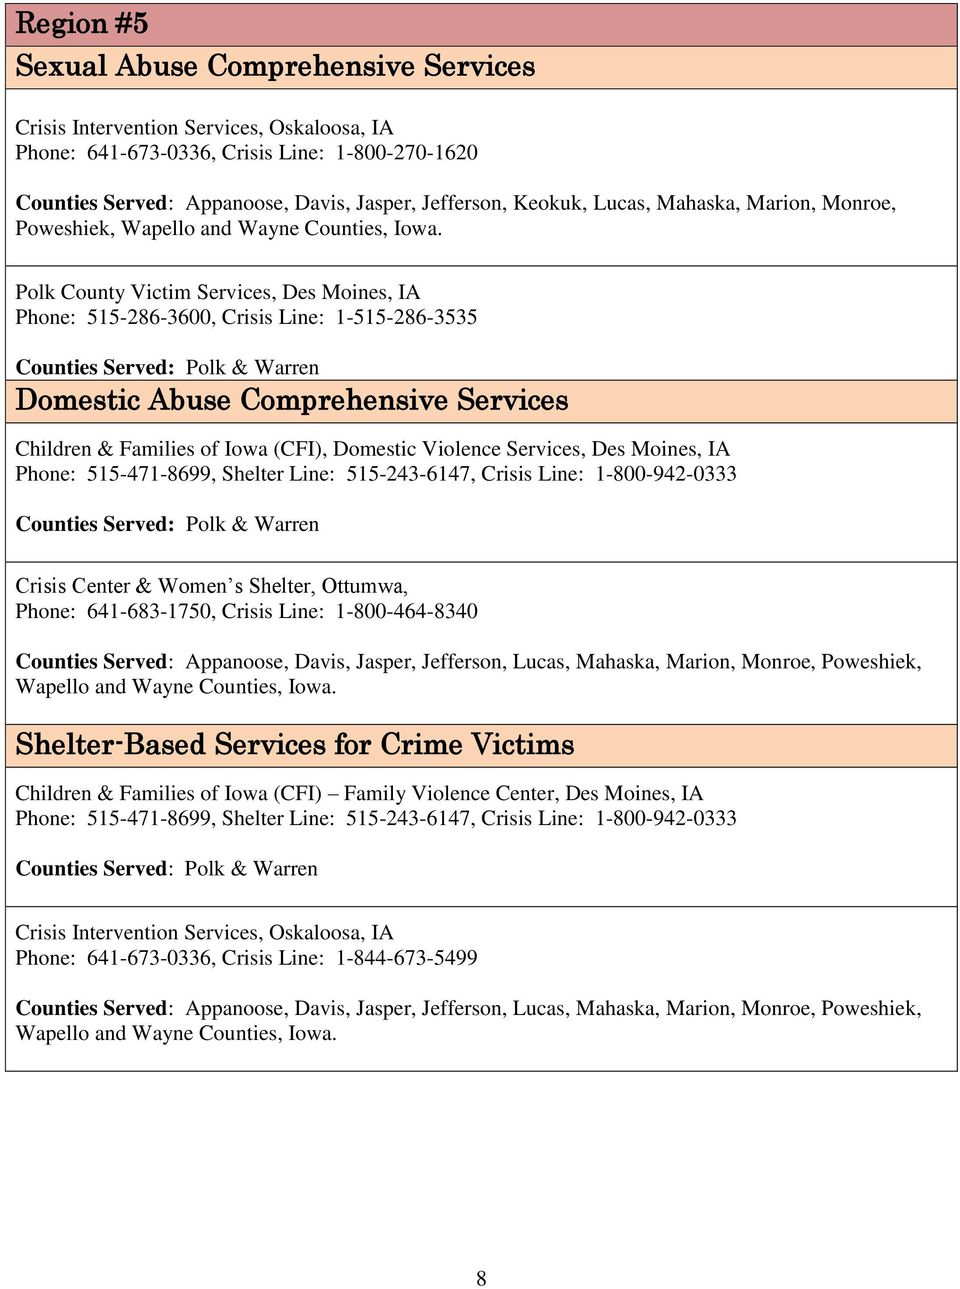 Polk County Victim Services, Des Moines, IA Phone: 515-286-3600, Crisis Line: 1-515-286-3535 Counties Served: Polk & Warren Children & Families of Iowa (CFI), Domestic Violence Services, Des Moines,